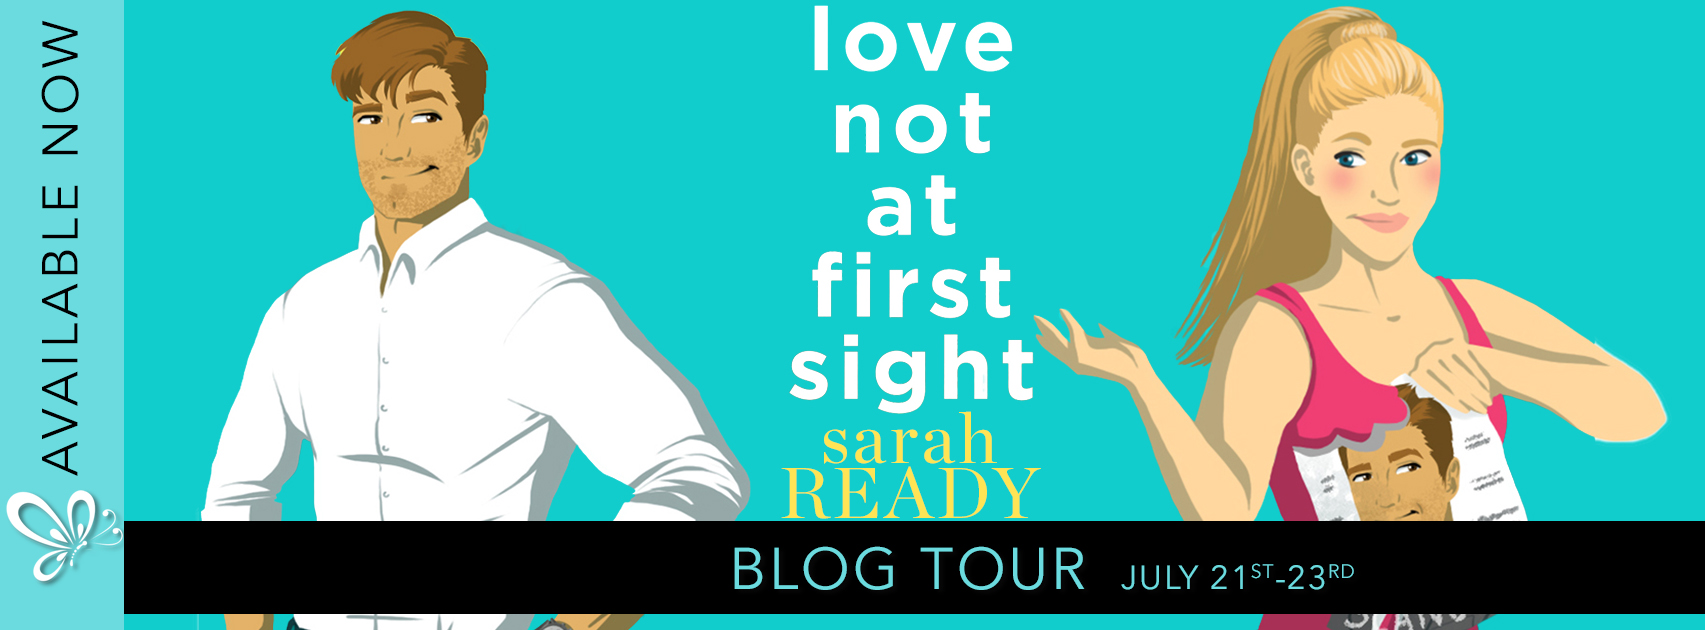 Can I Live in Romeo too?   Love Not at First Sight by Sarah Ready